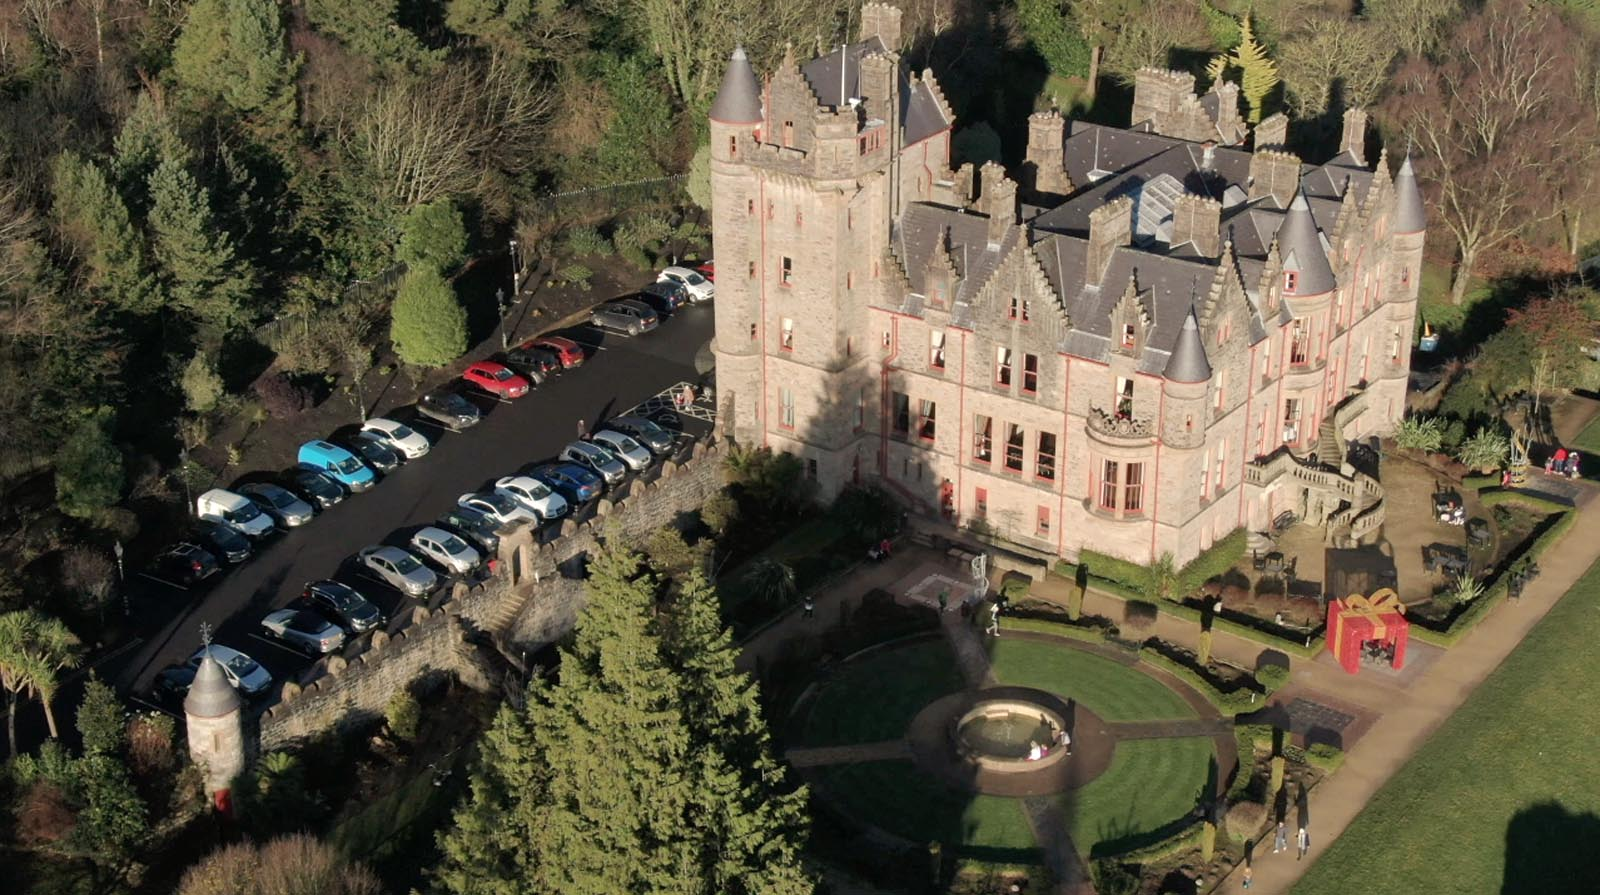 Aerial drone photography and video production services Dublin and Ireland portfolio - screenshot 2 of Belfast Castle 2 video